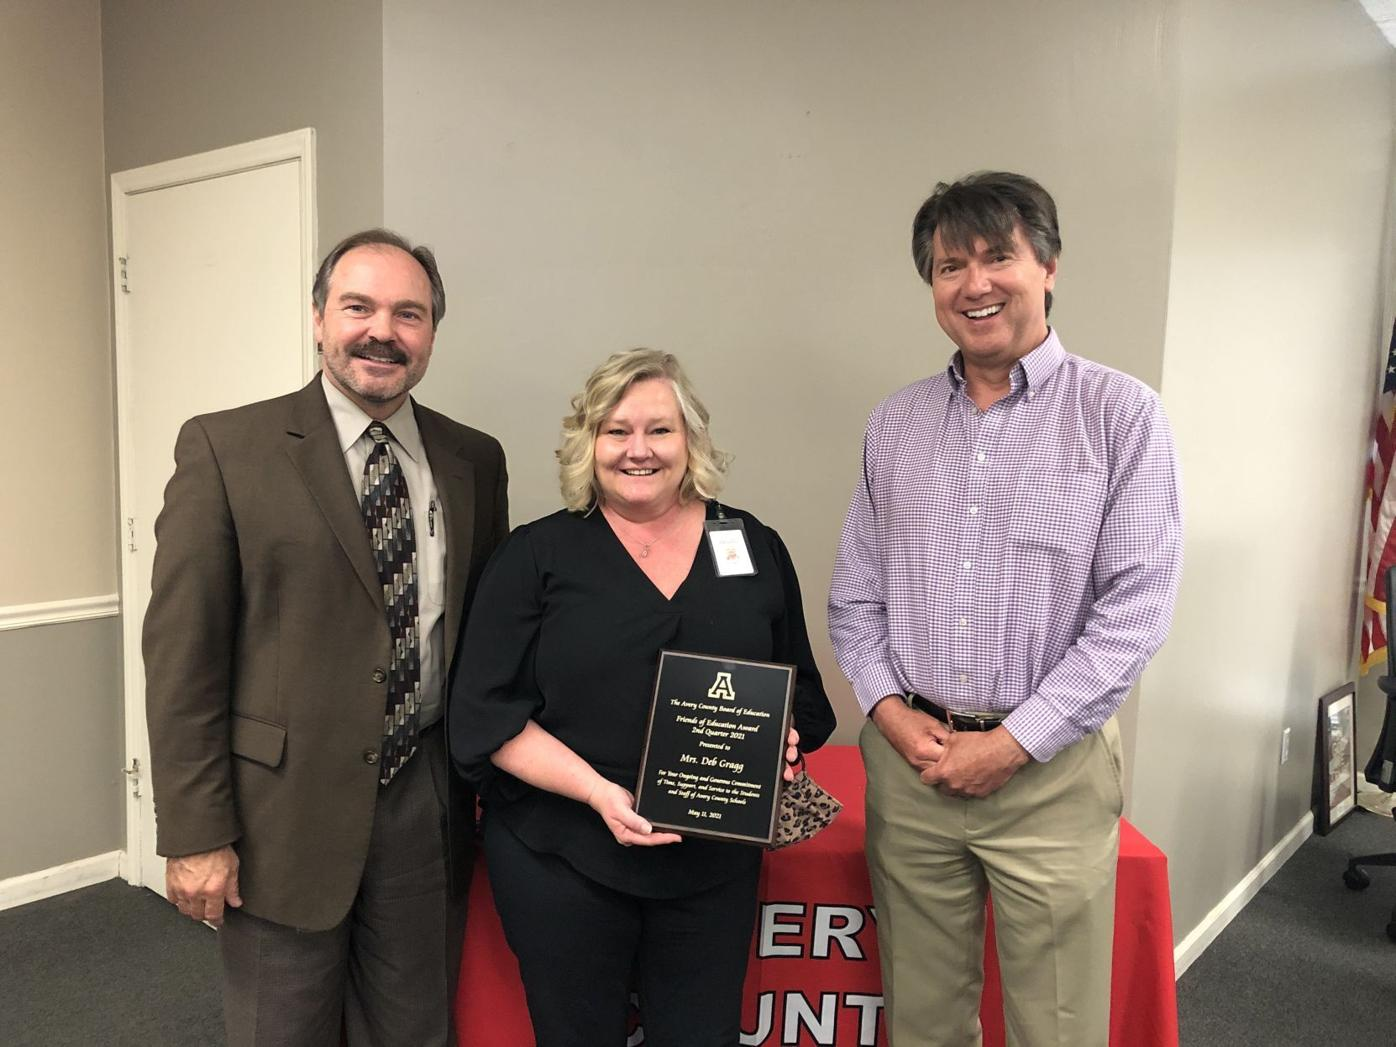 Gragg recognized as Friend of Education